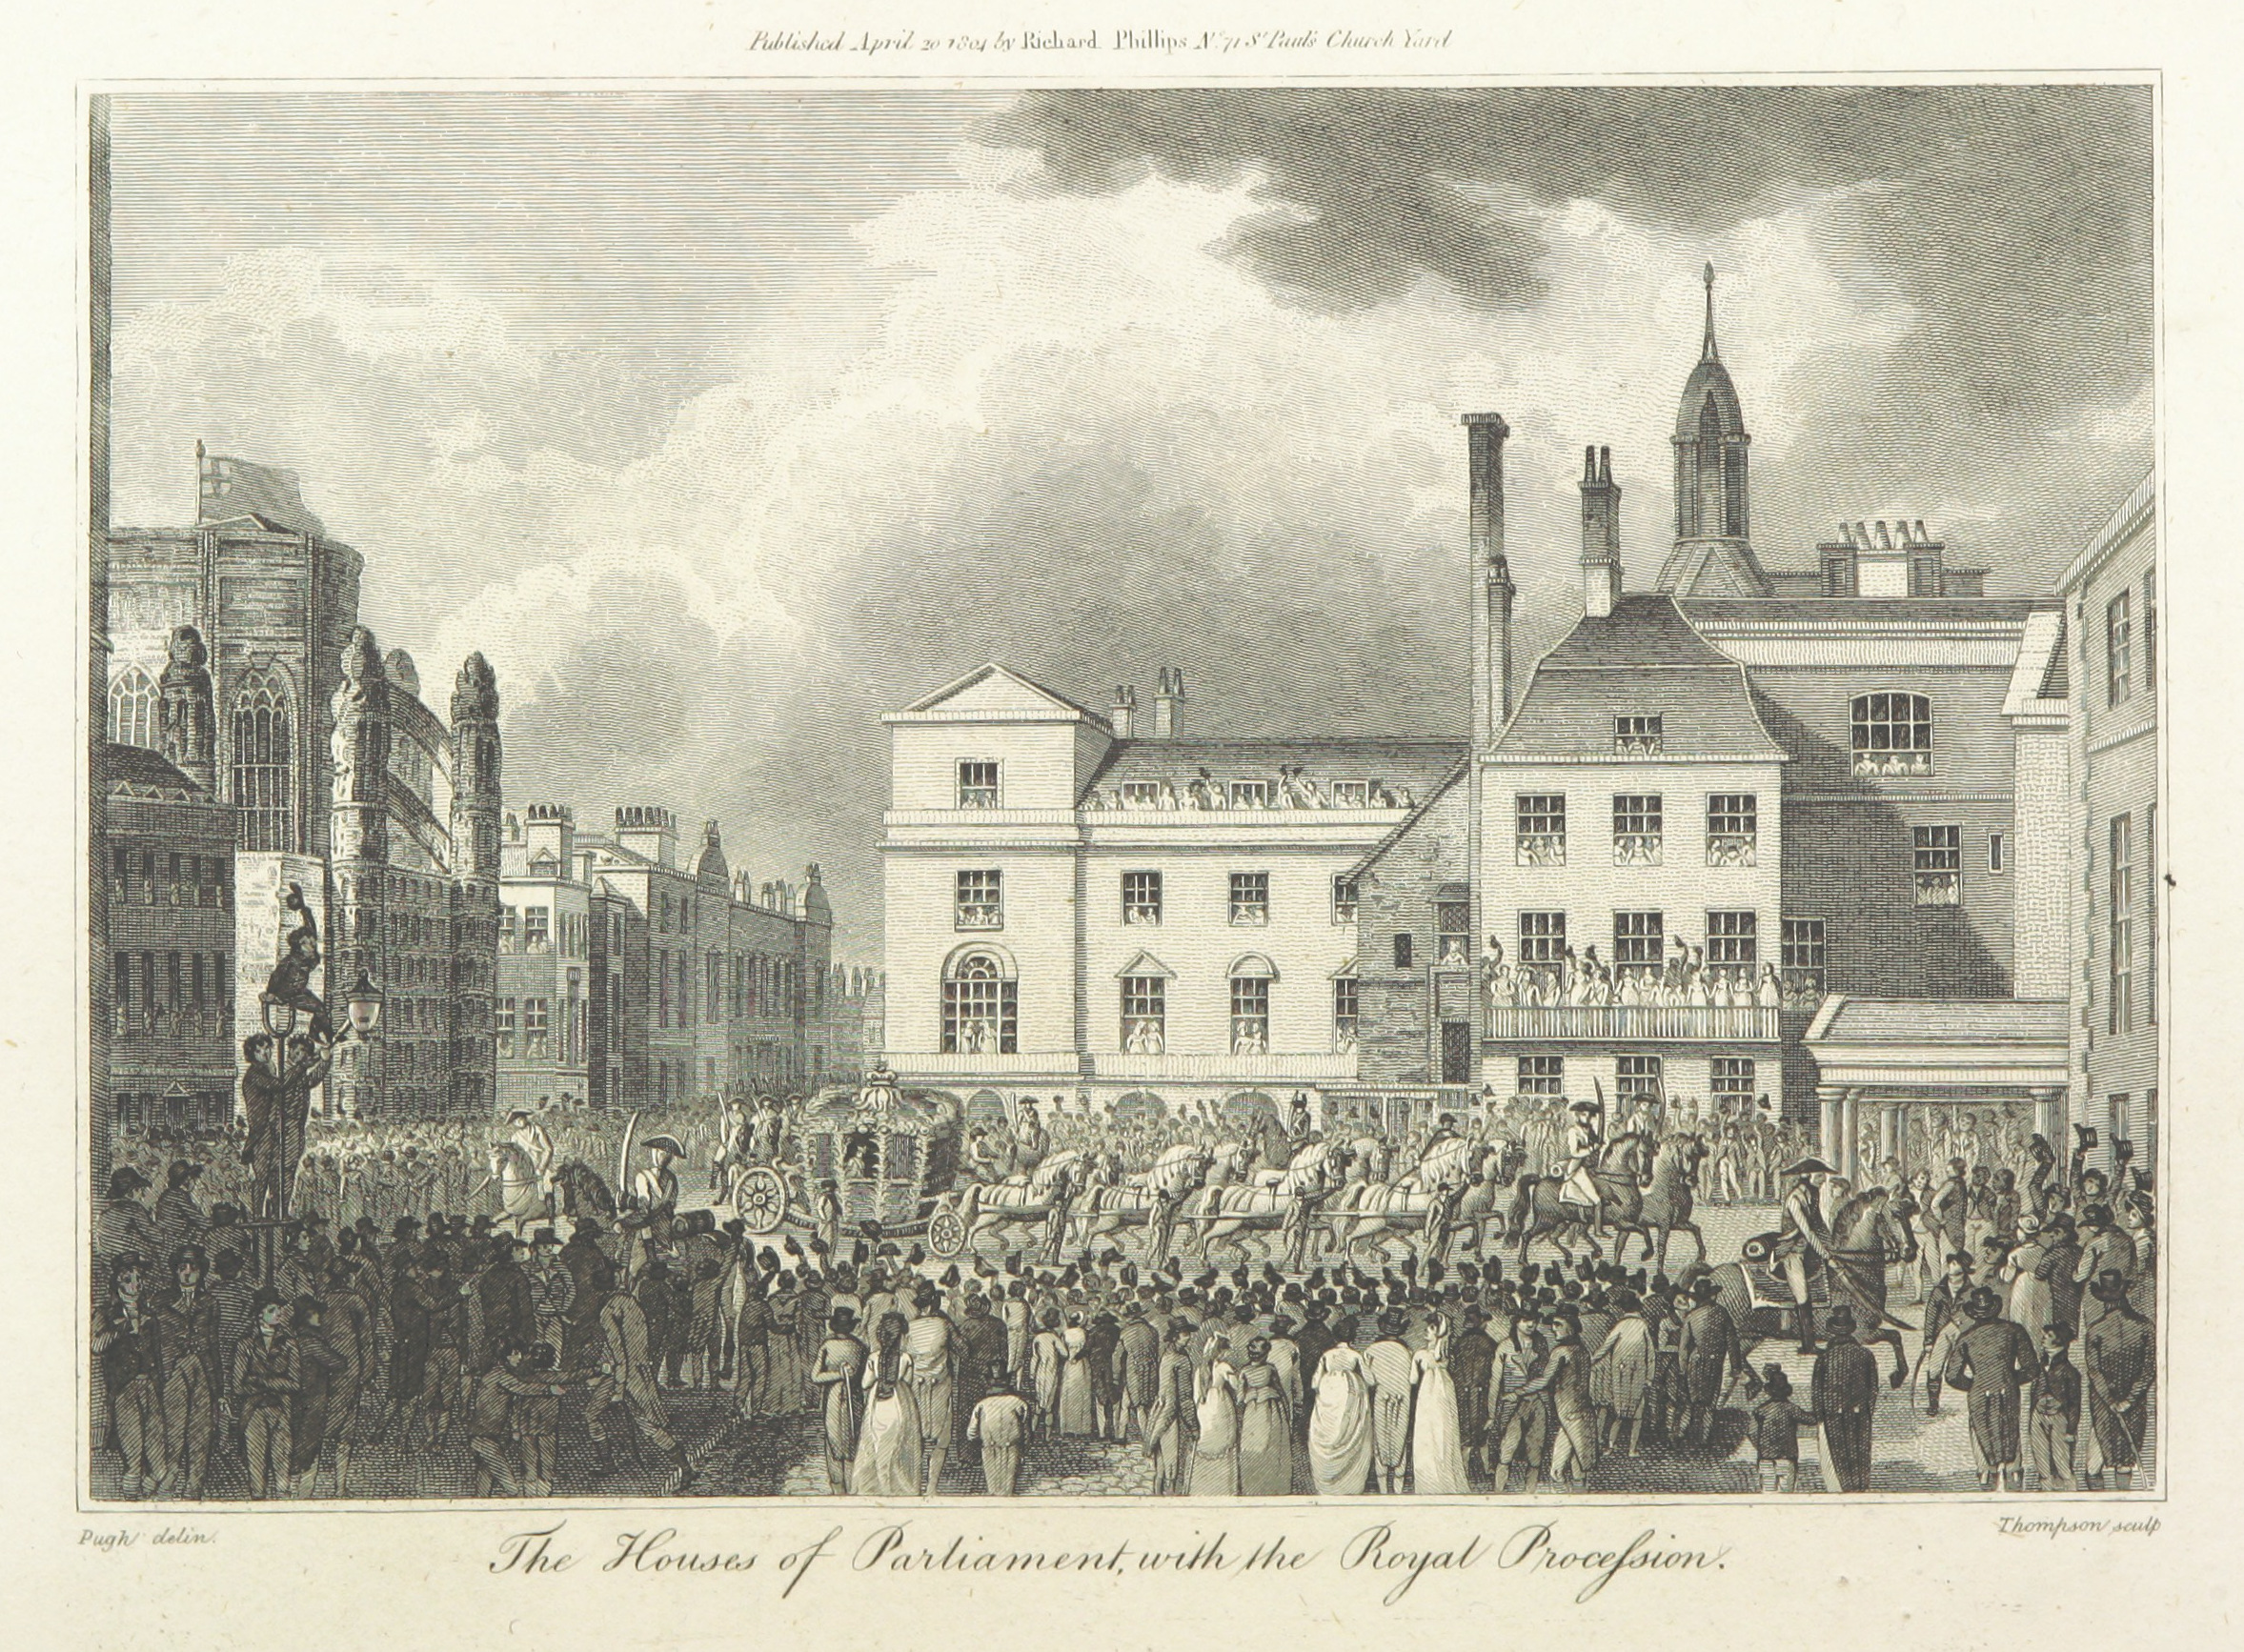 Phillips(1804)_p288_-_The_Houses_of_Parliament_with_the_Royal_Procession